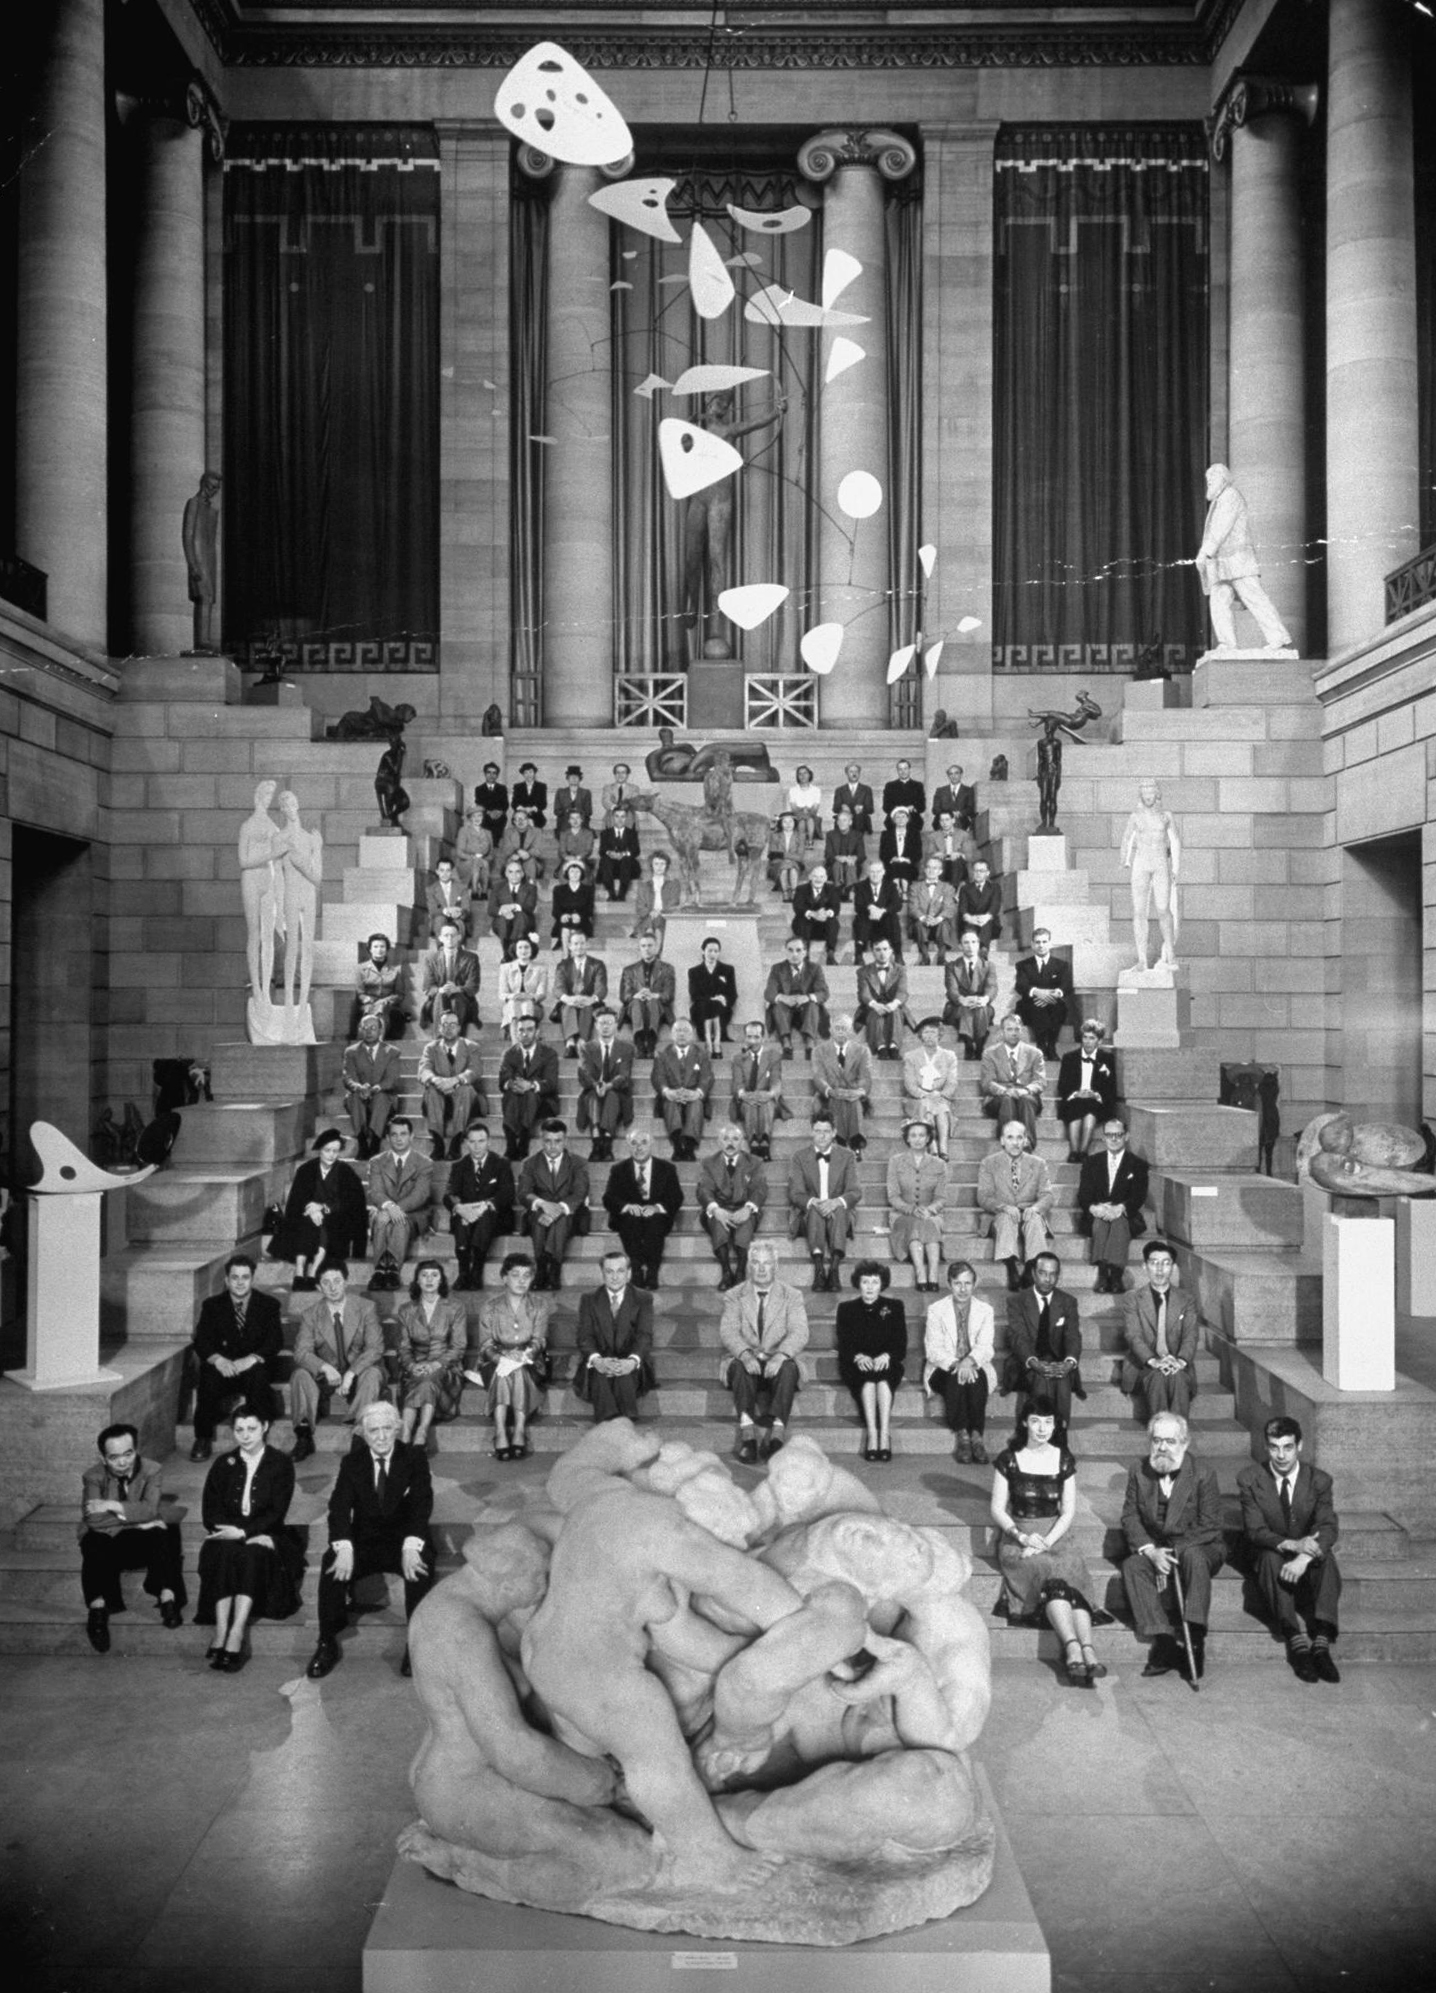 Sculptors posing for a group picture at the Philadelphia Museum of Art during the 1949 Sculpture International.